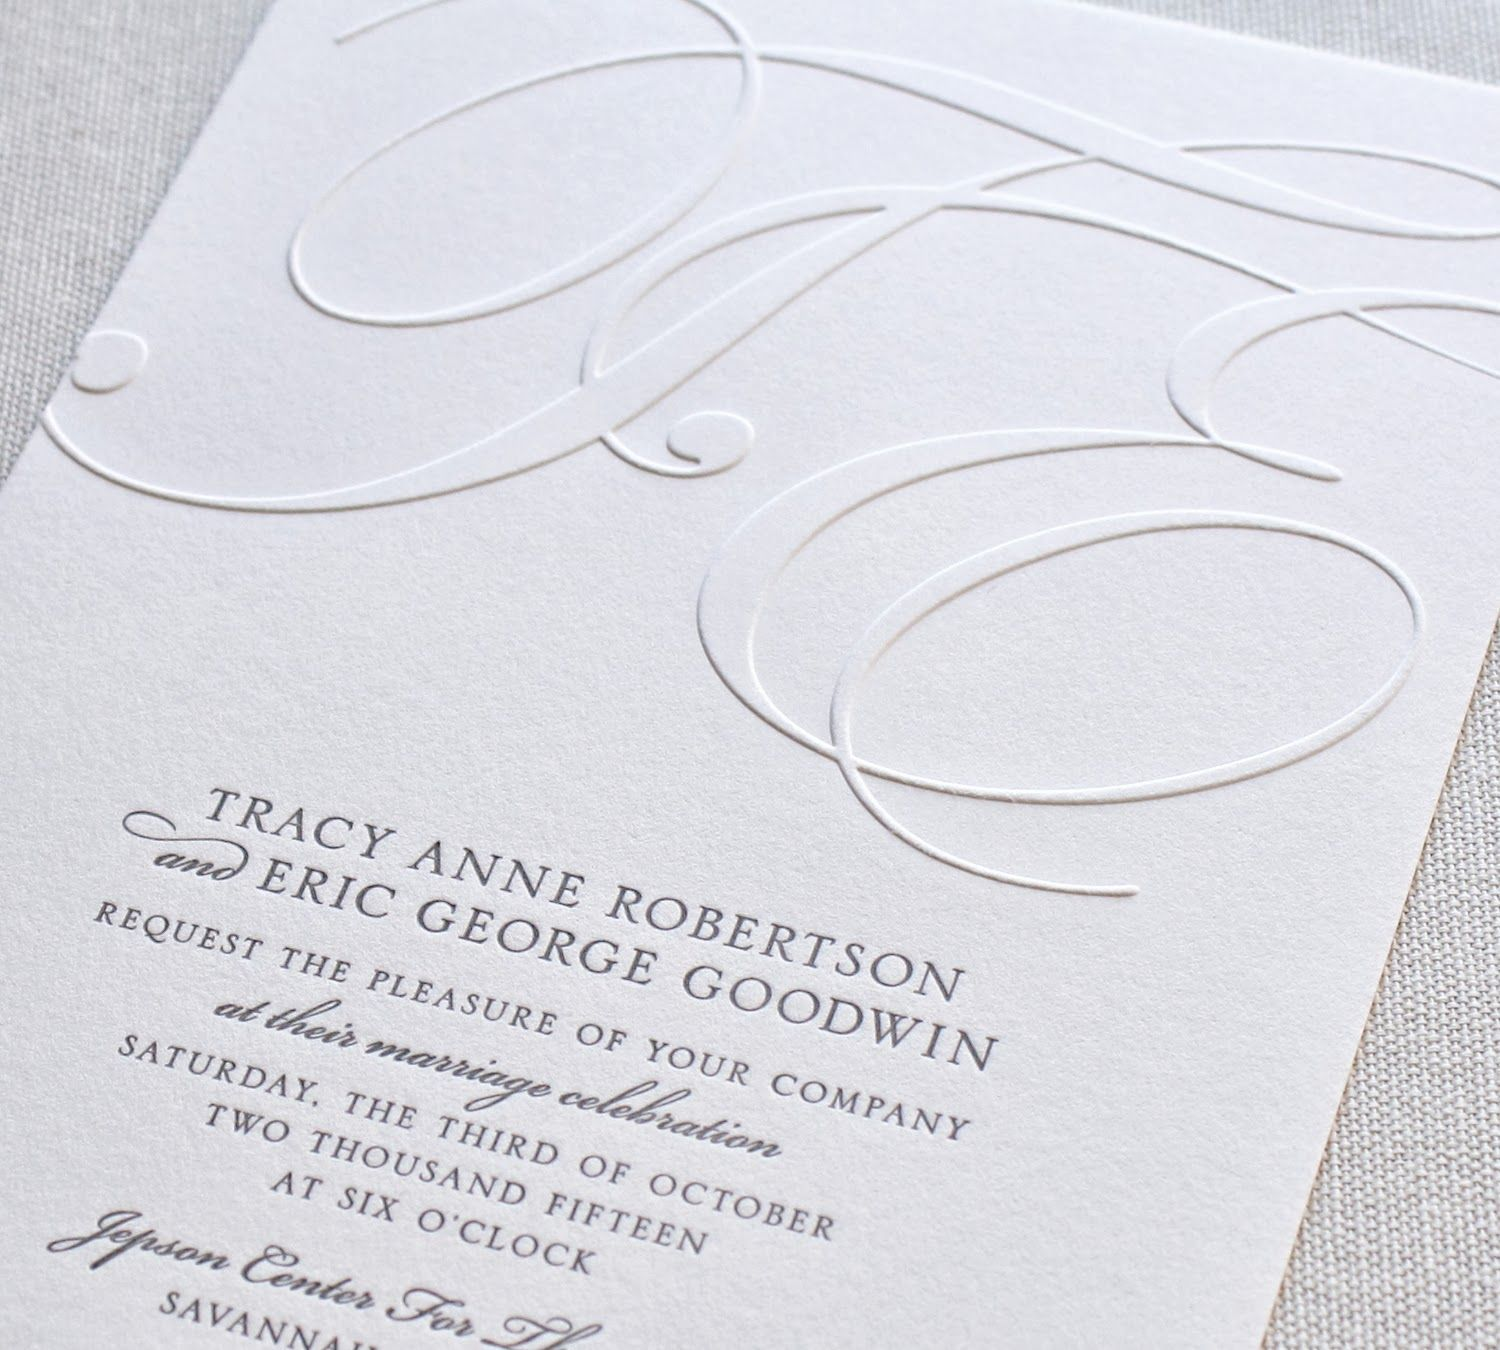 Ordering Your Wedding Invitations 101 Advice From A Stationer William Arthur Fine Stationery